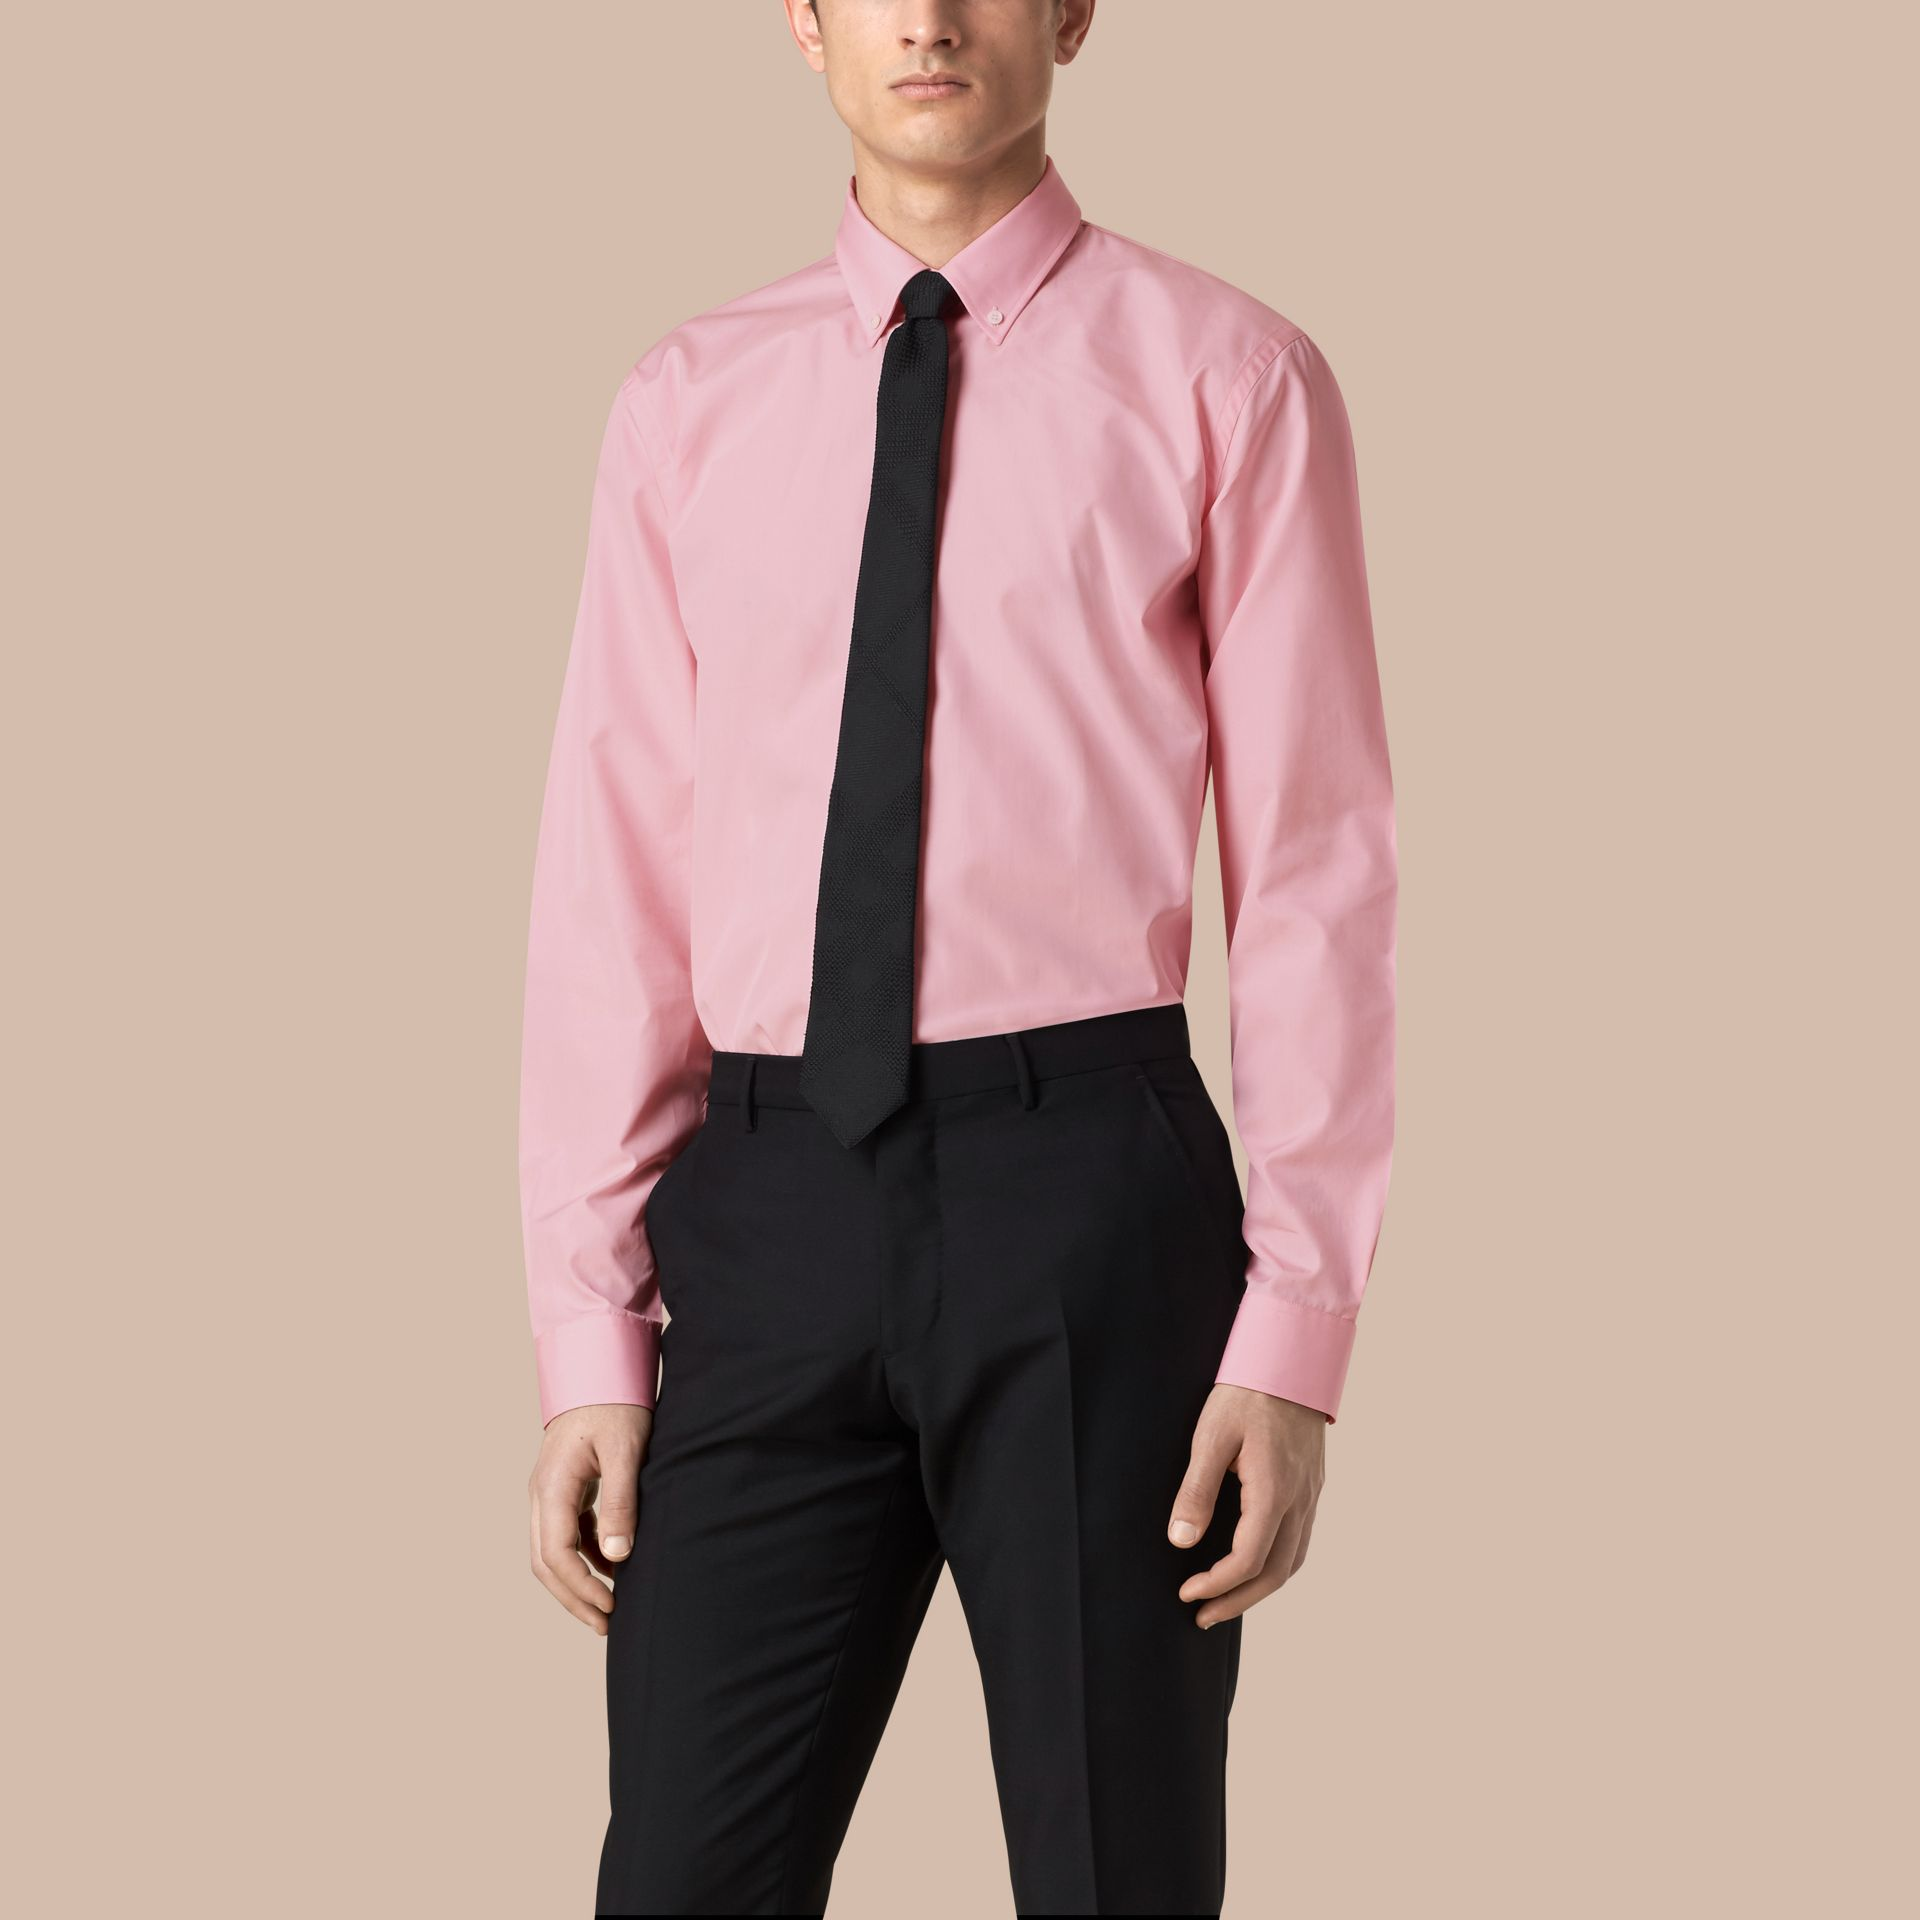 City pink Modern Fit Button-down Collar Cotton Poplin Shirt City Pink - gallery image 1